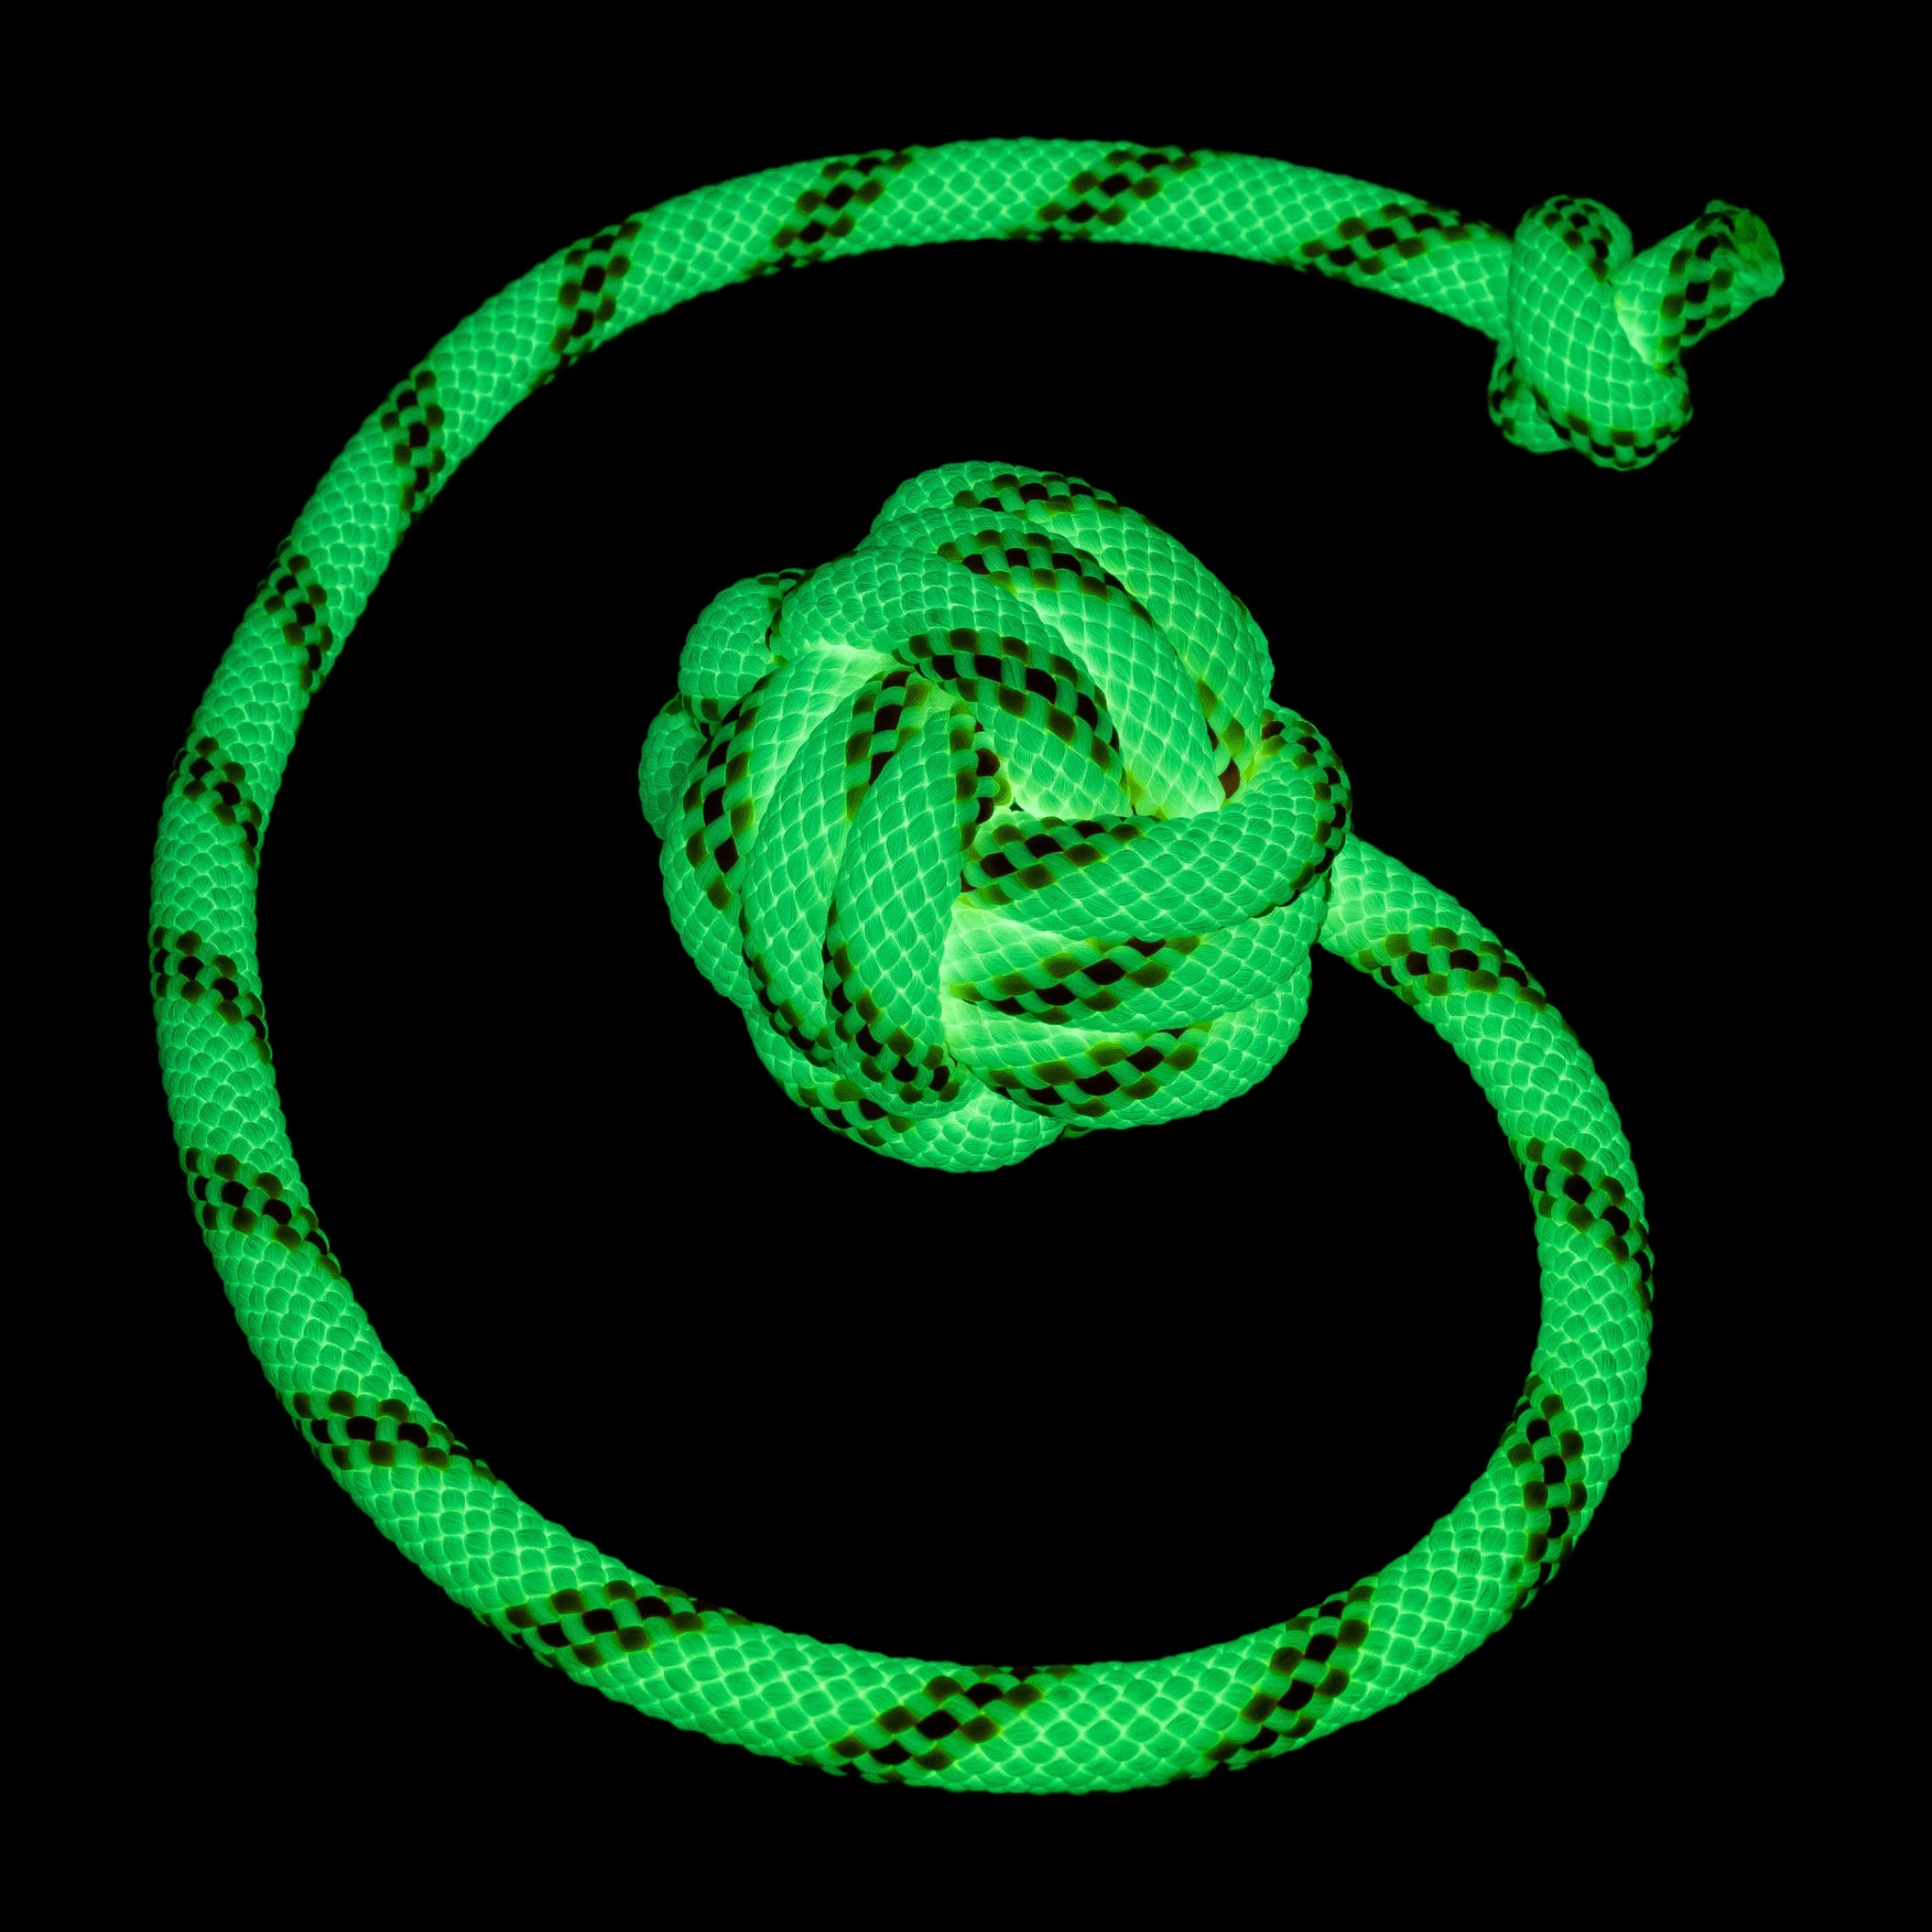 Glow in the dark tied monkey fist dog toy